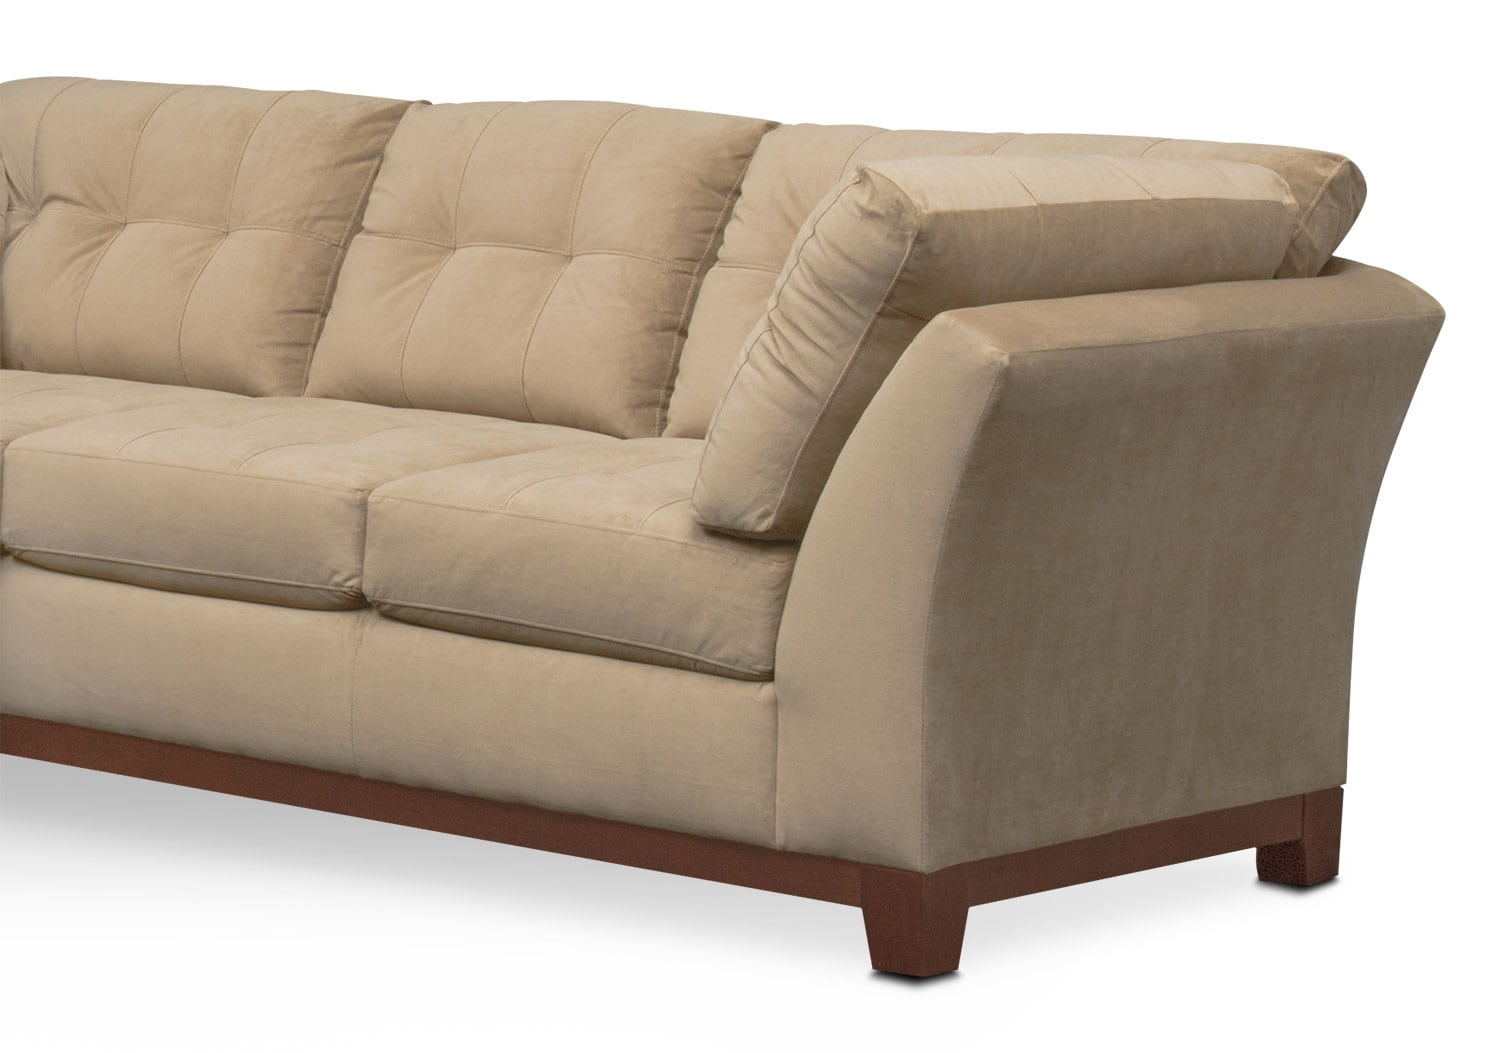 Miraculous Sebring 2 Piece Sectional With Left Facing Loveseat Cocoa Theyellowbook Wood Chair Design Ideas Theyellowbookinfo